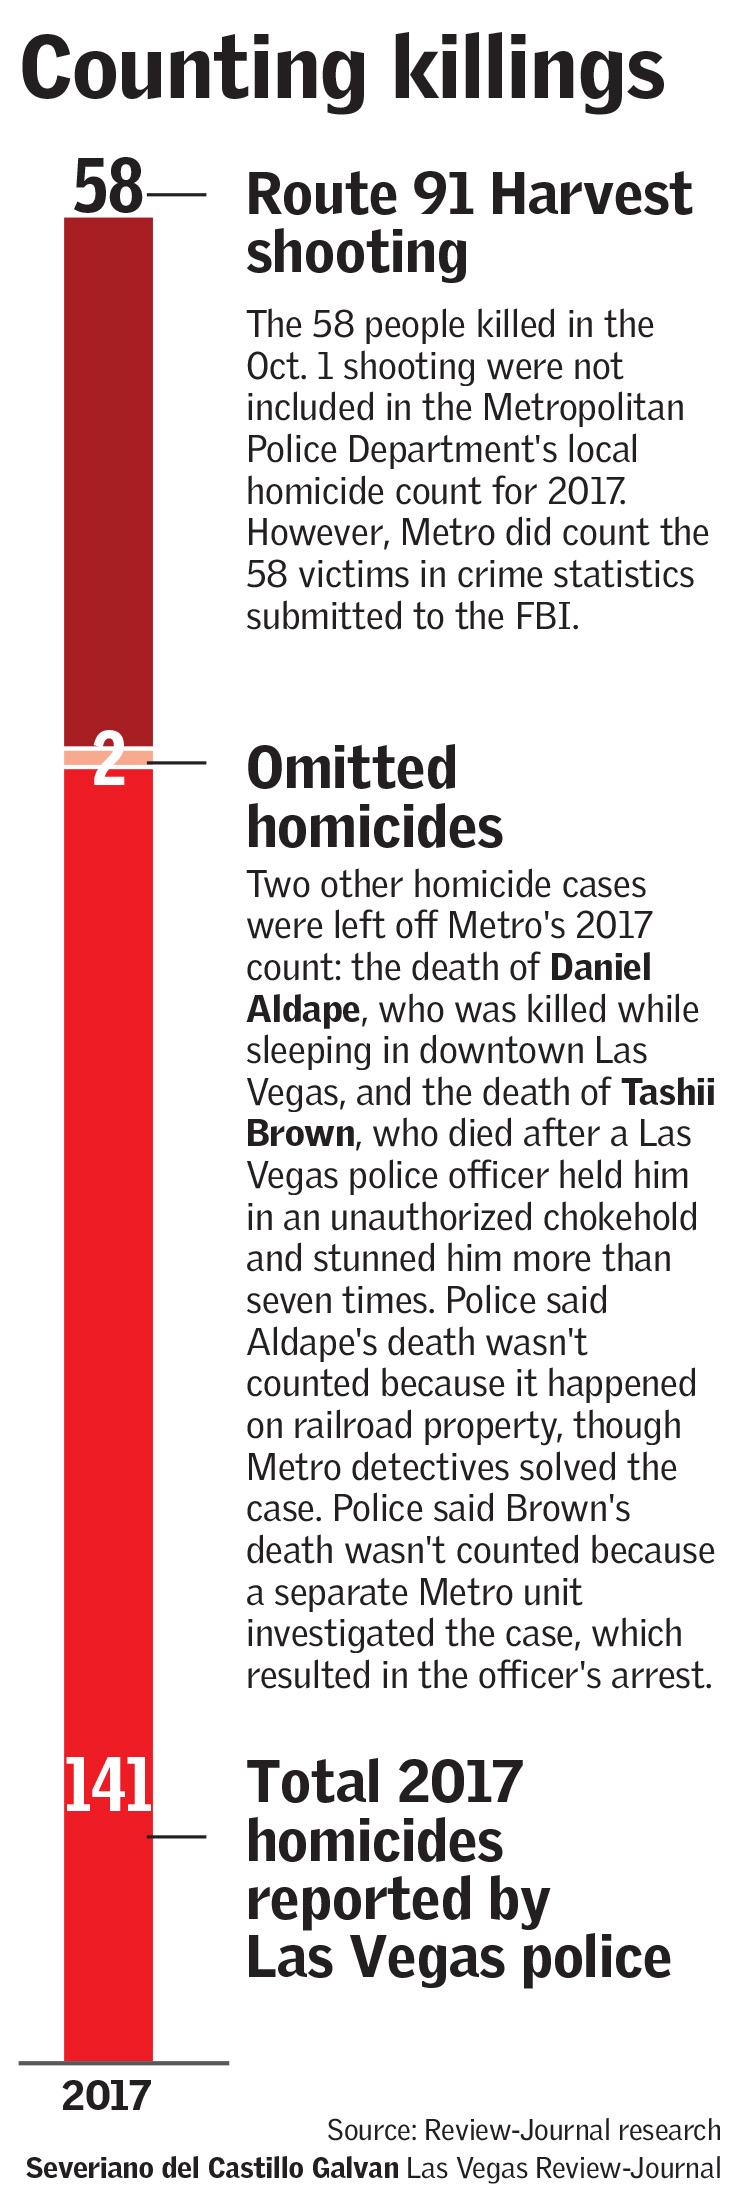 Metro murder stats (Severiano del Castillo Galvãn/Las Vegas Review-Journal)